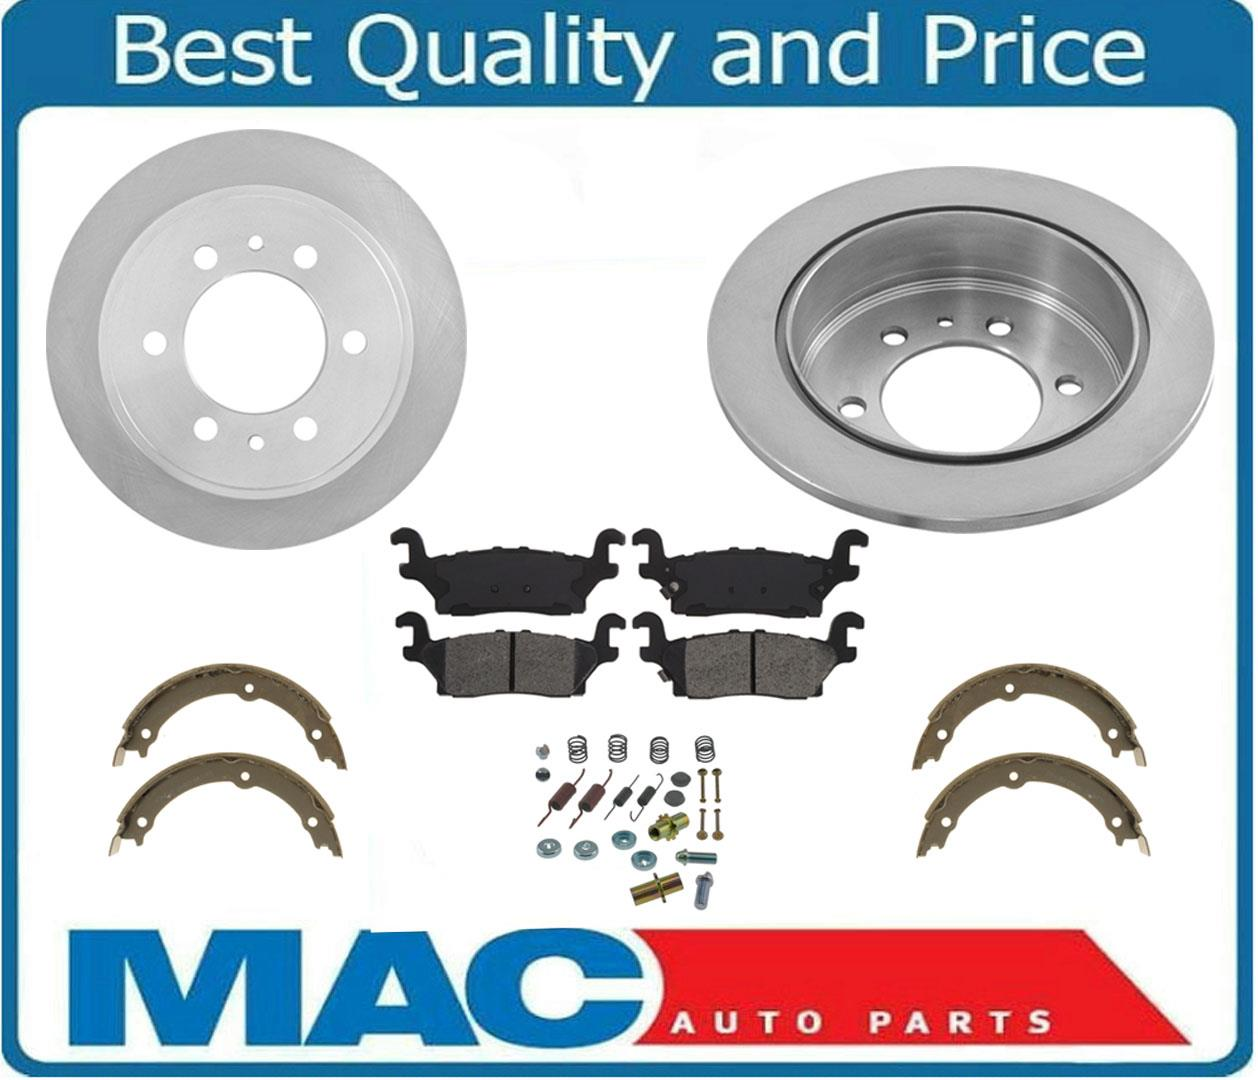 Details about Fits 8-8 Hummer H8 & H8T Rear Brake Rotors & Pads Emergency  Shoes Springs 8Pc | hummer h3 brake pads